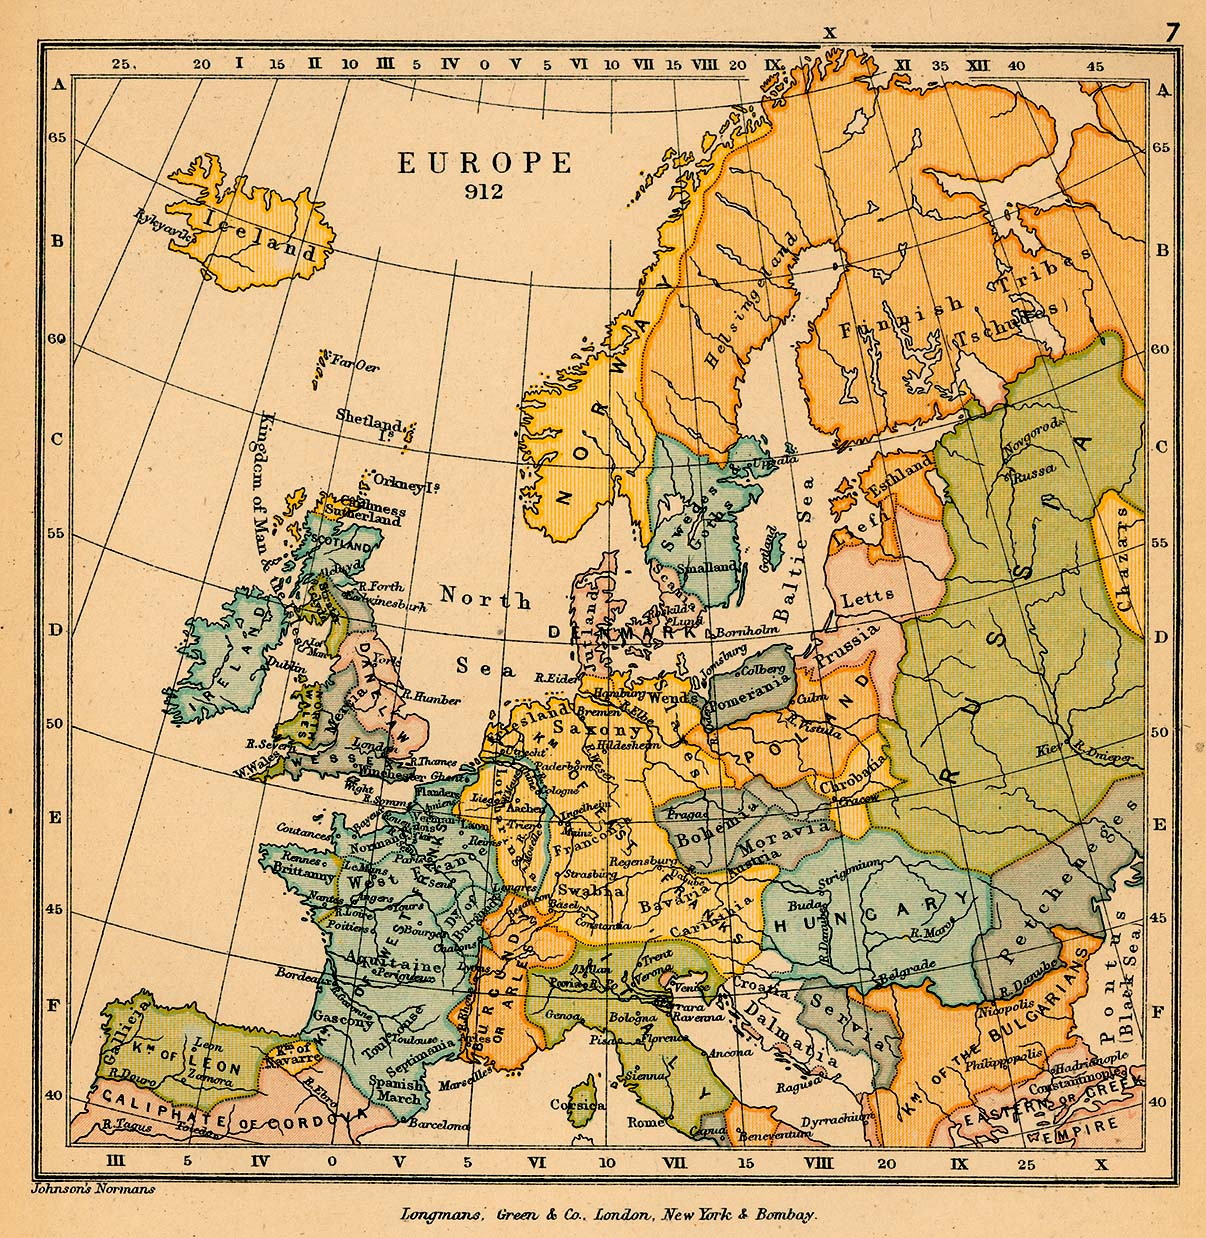 map of europe in 912